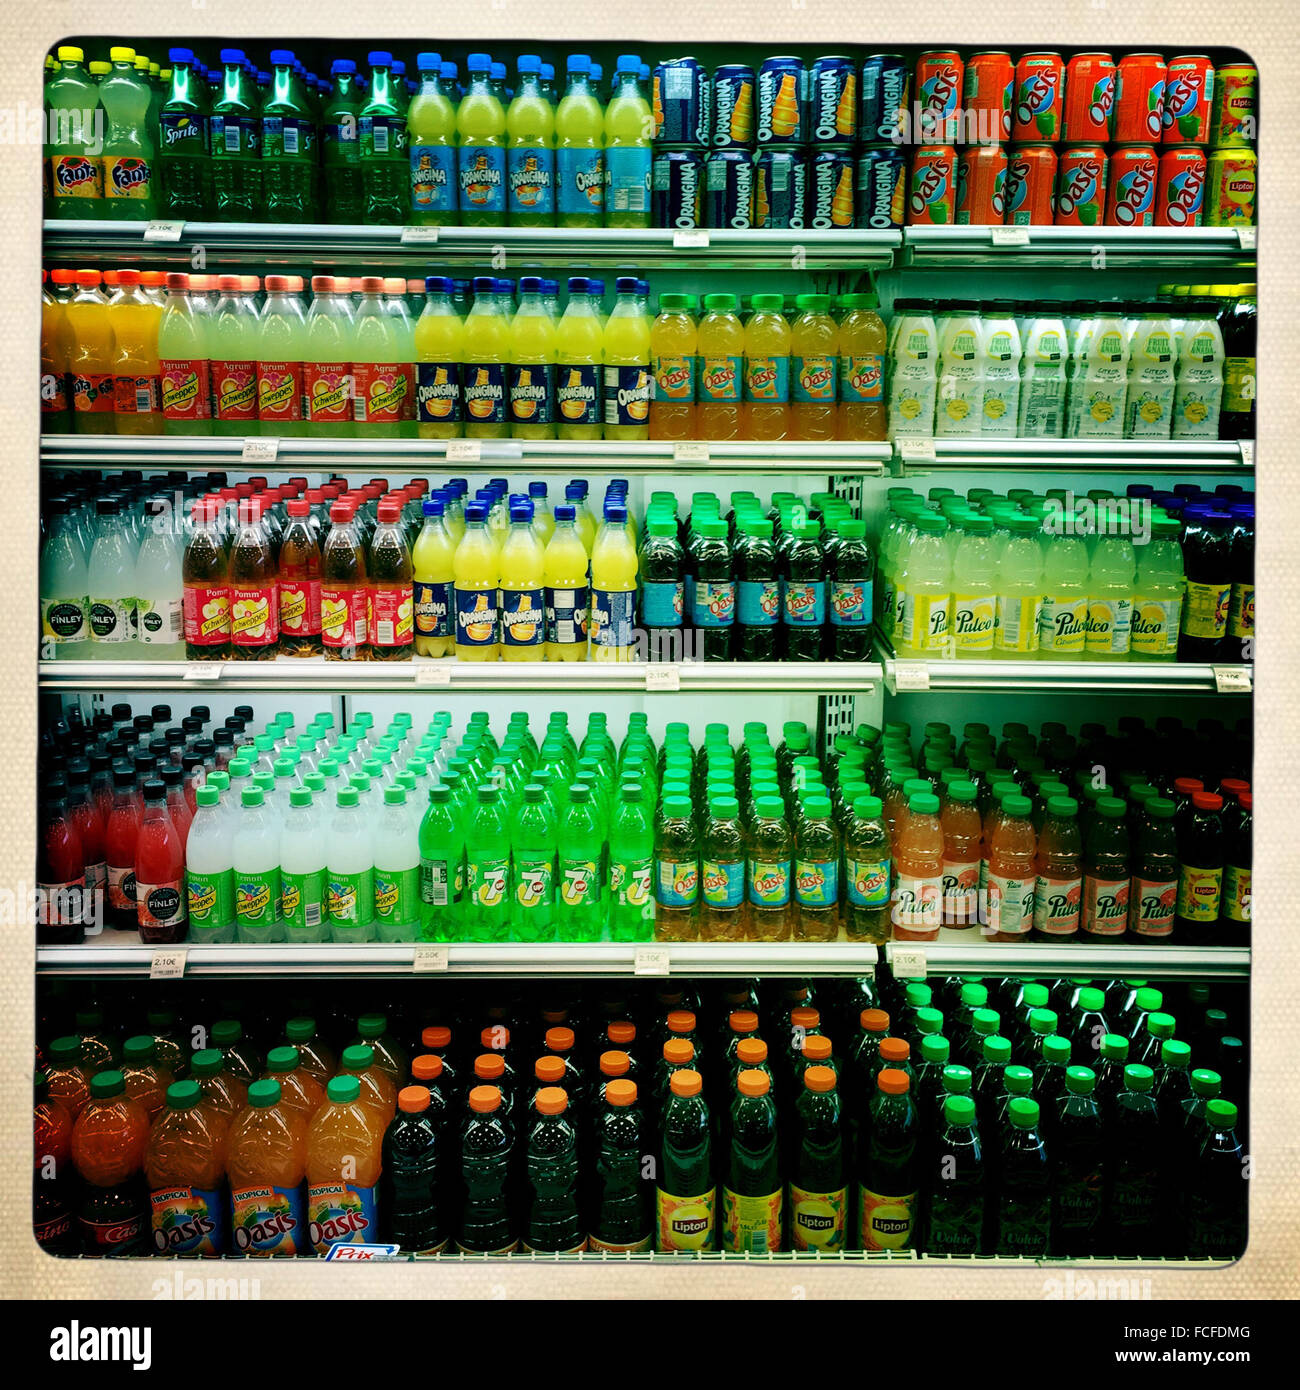 Sodas in a supermarket. - Stock Image